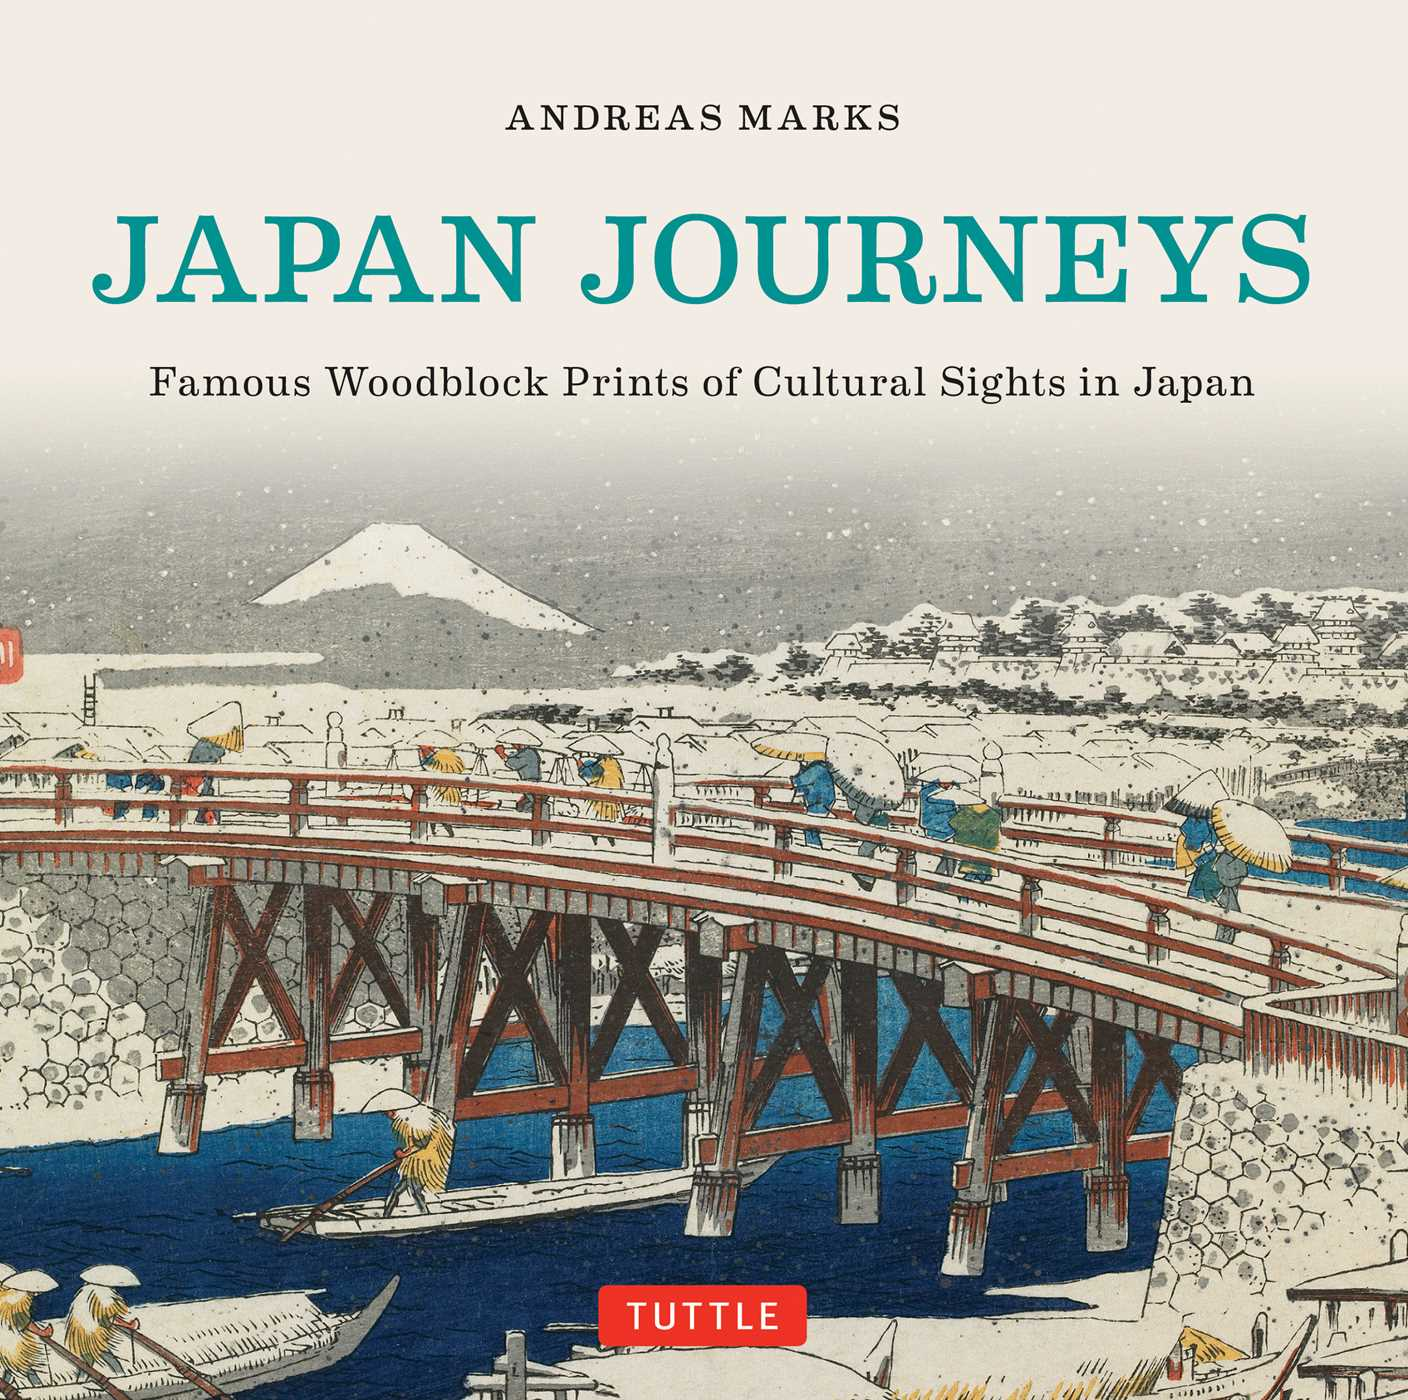 Japan Journeys : Famous Woodblock Prints of Cultural Sights in Japan